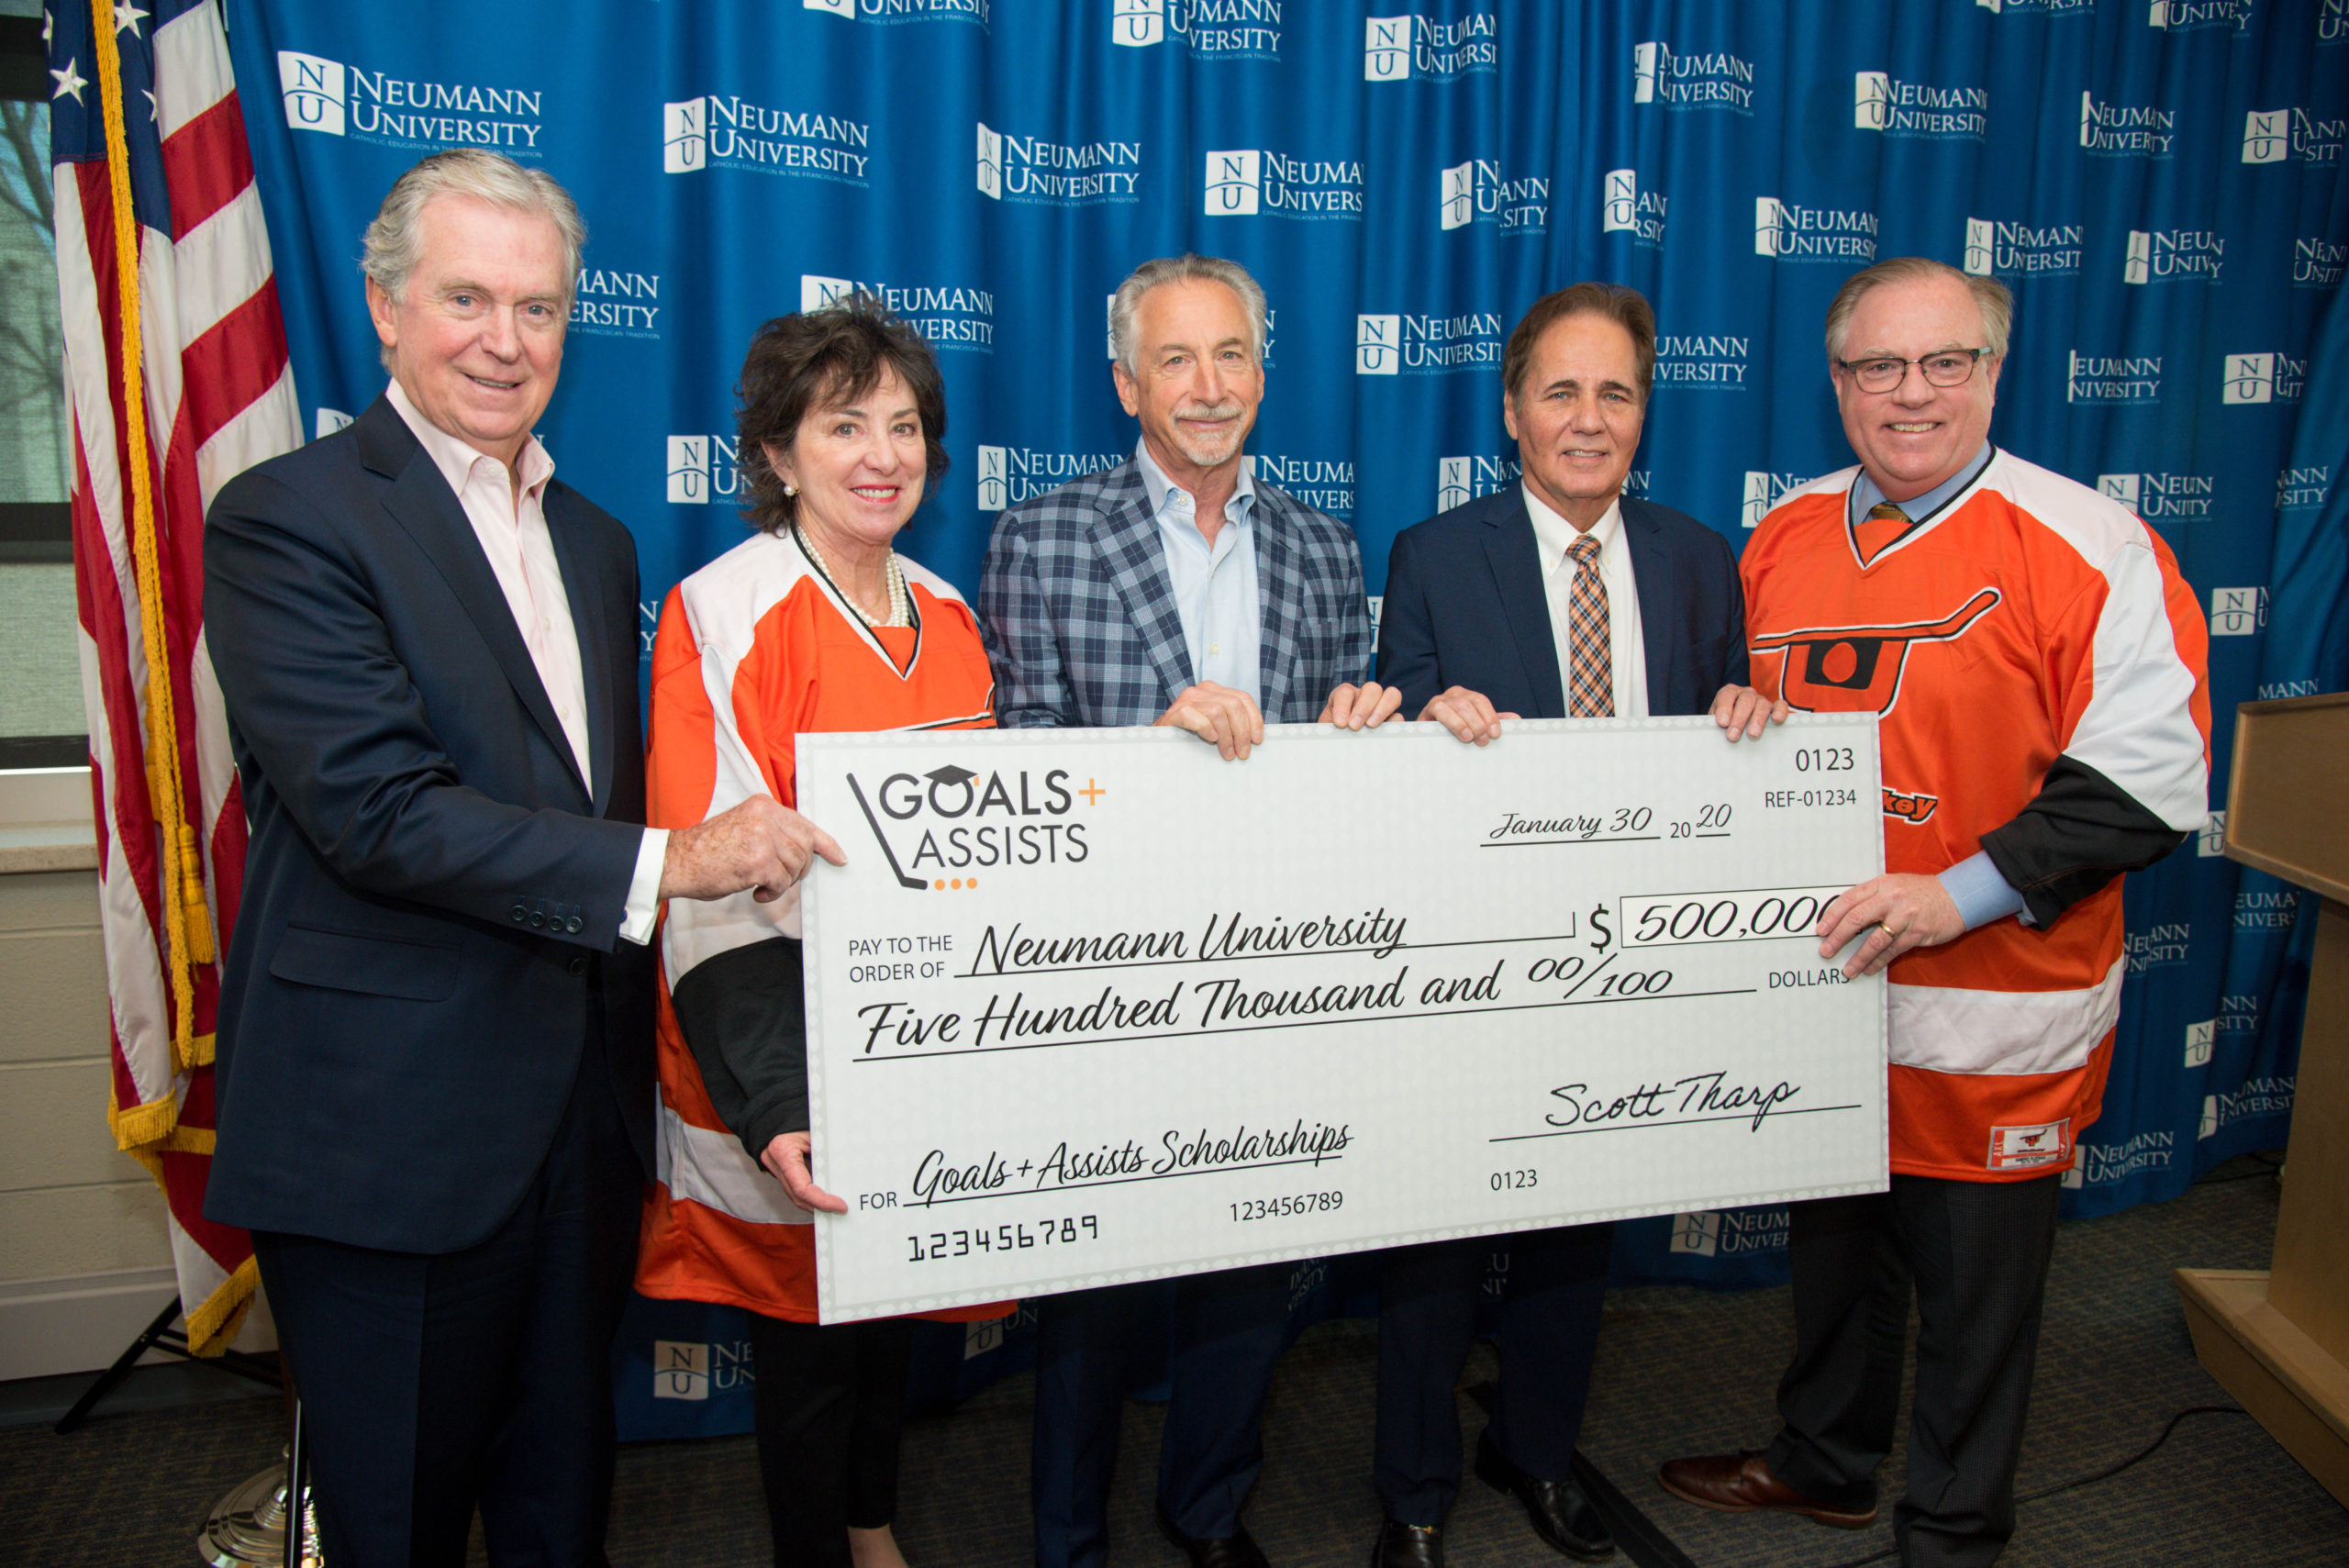 Ed Snider Youth Hockey Foundation Gives $500,000 for Scholarships to Neumann University